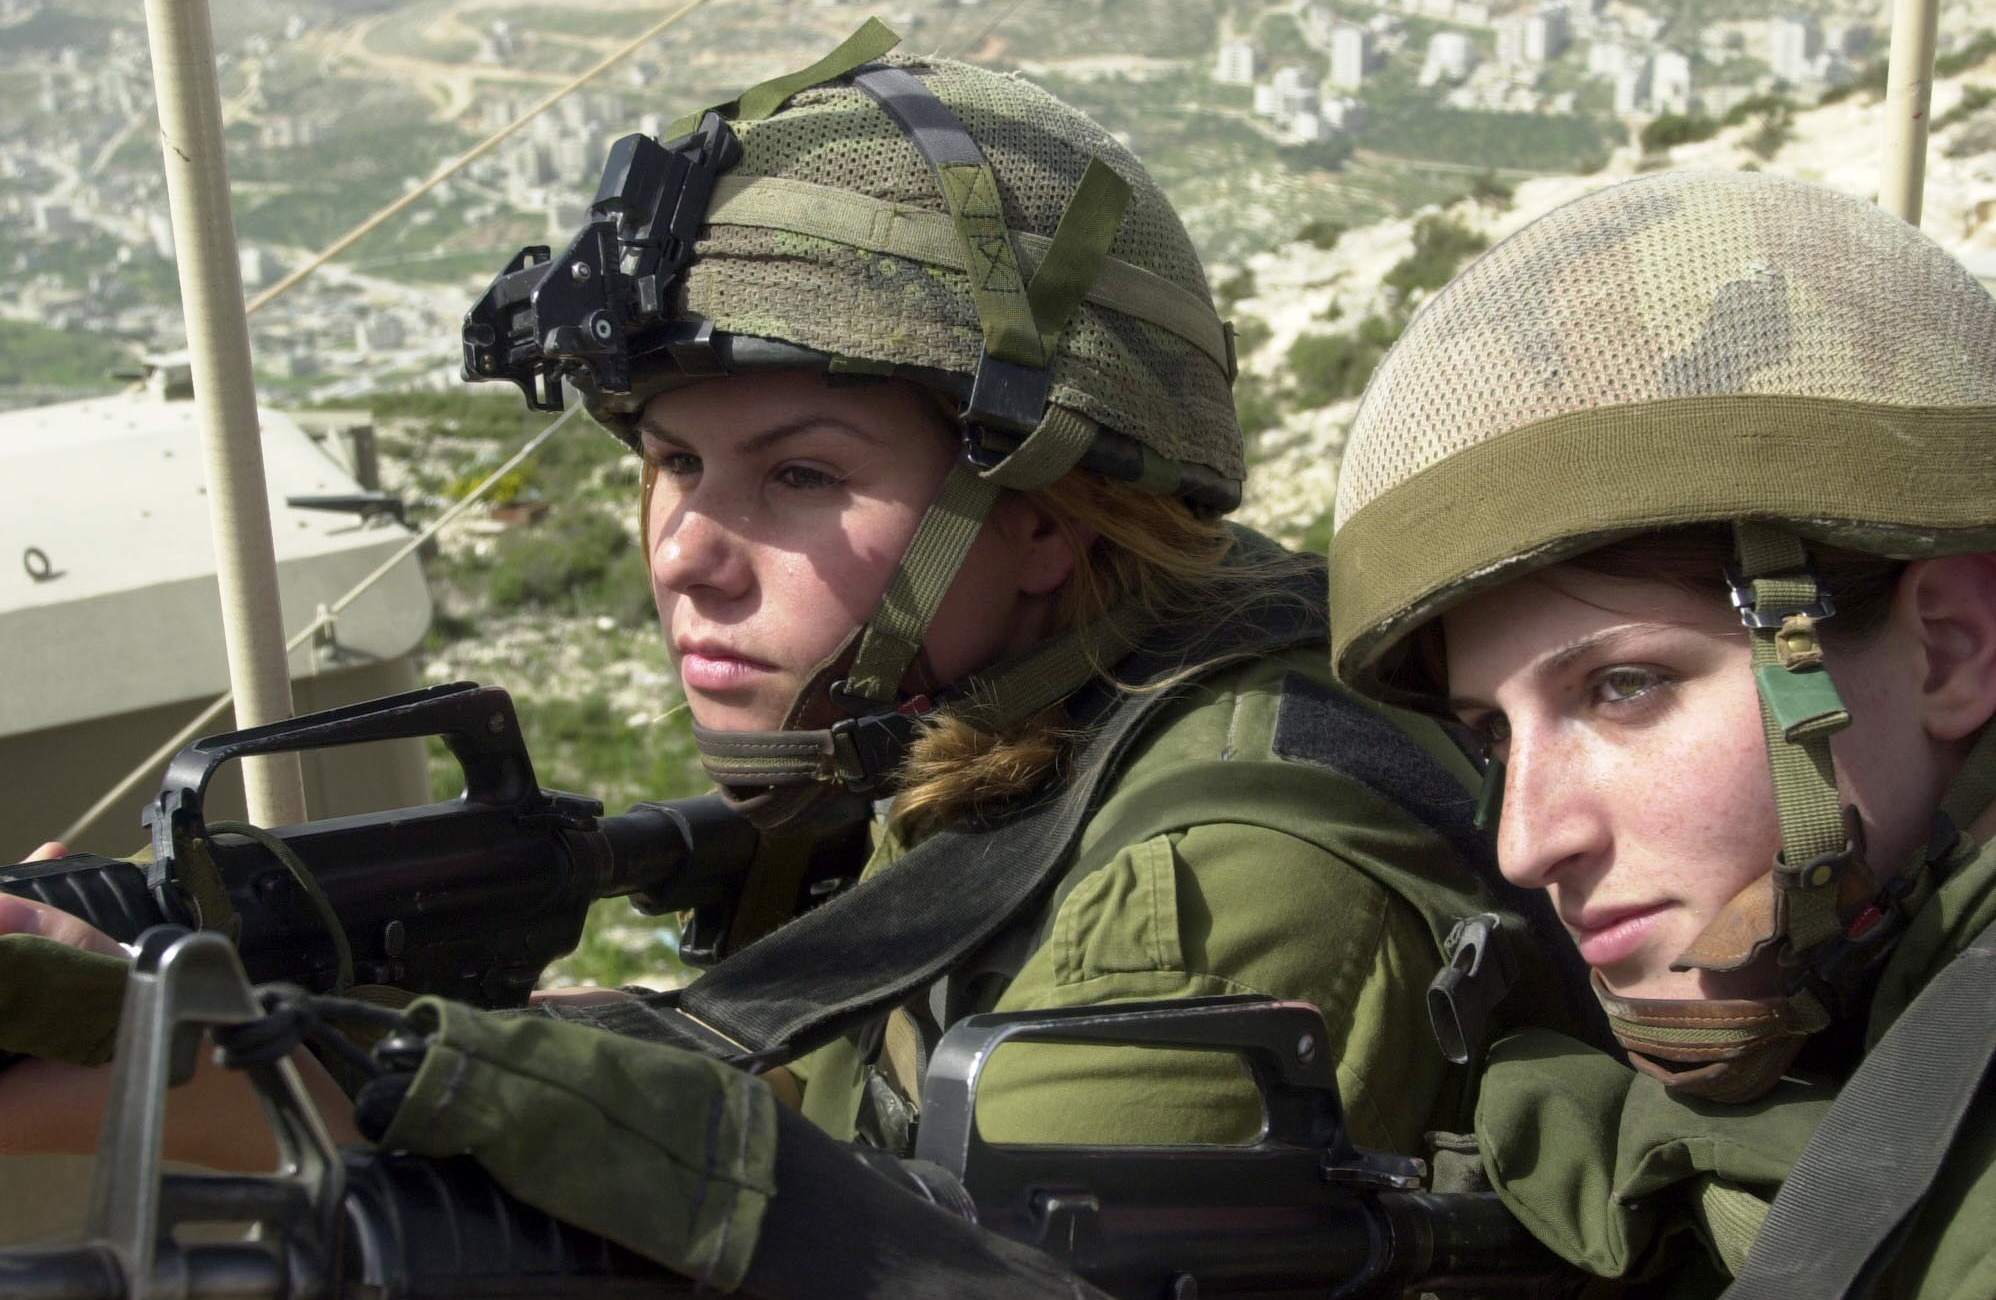 a look at issues surrounding the involvement of women in combat Nearly three-fourths of registered voters support allowing women to serve in combat roles in the military, according to a new morning consult poll  poll: women in combat is a popular idea .